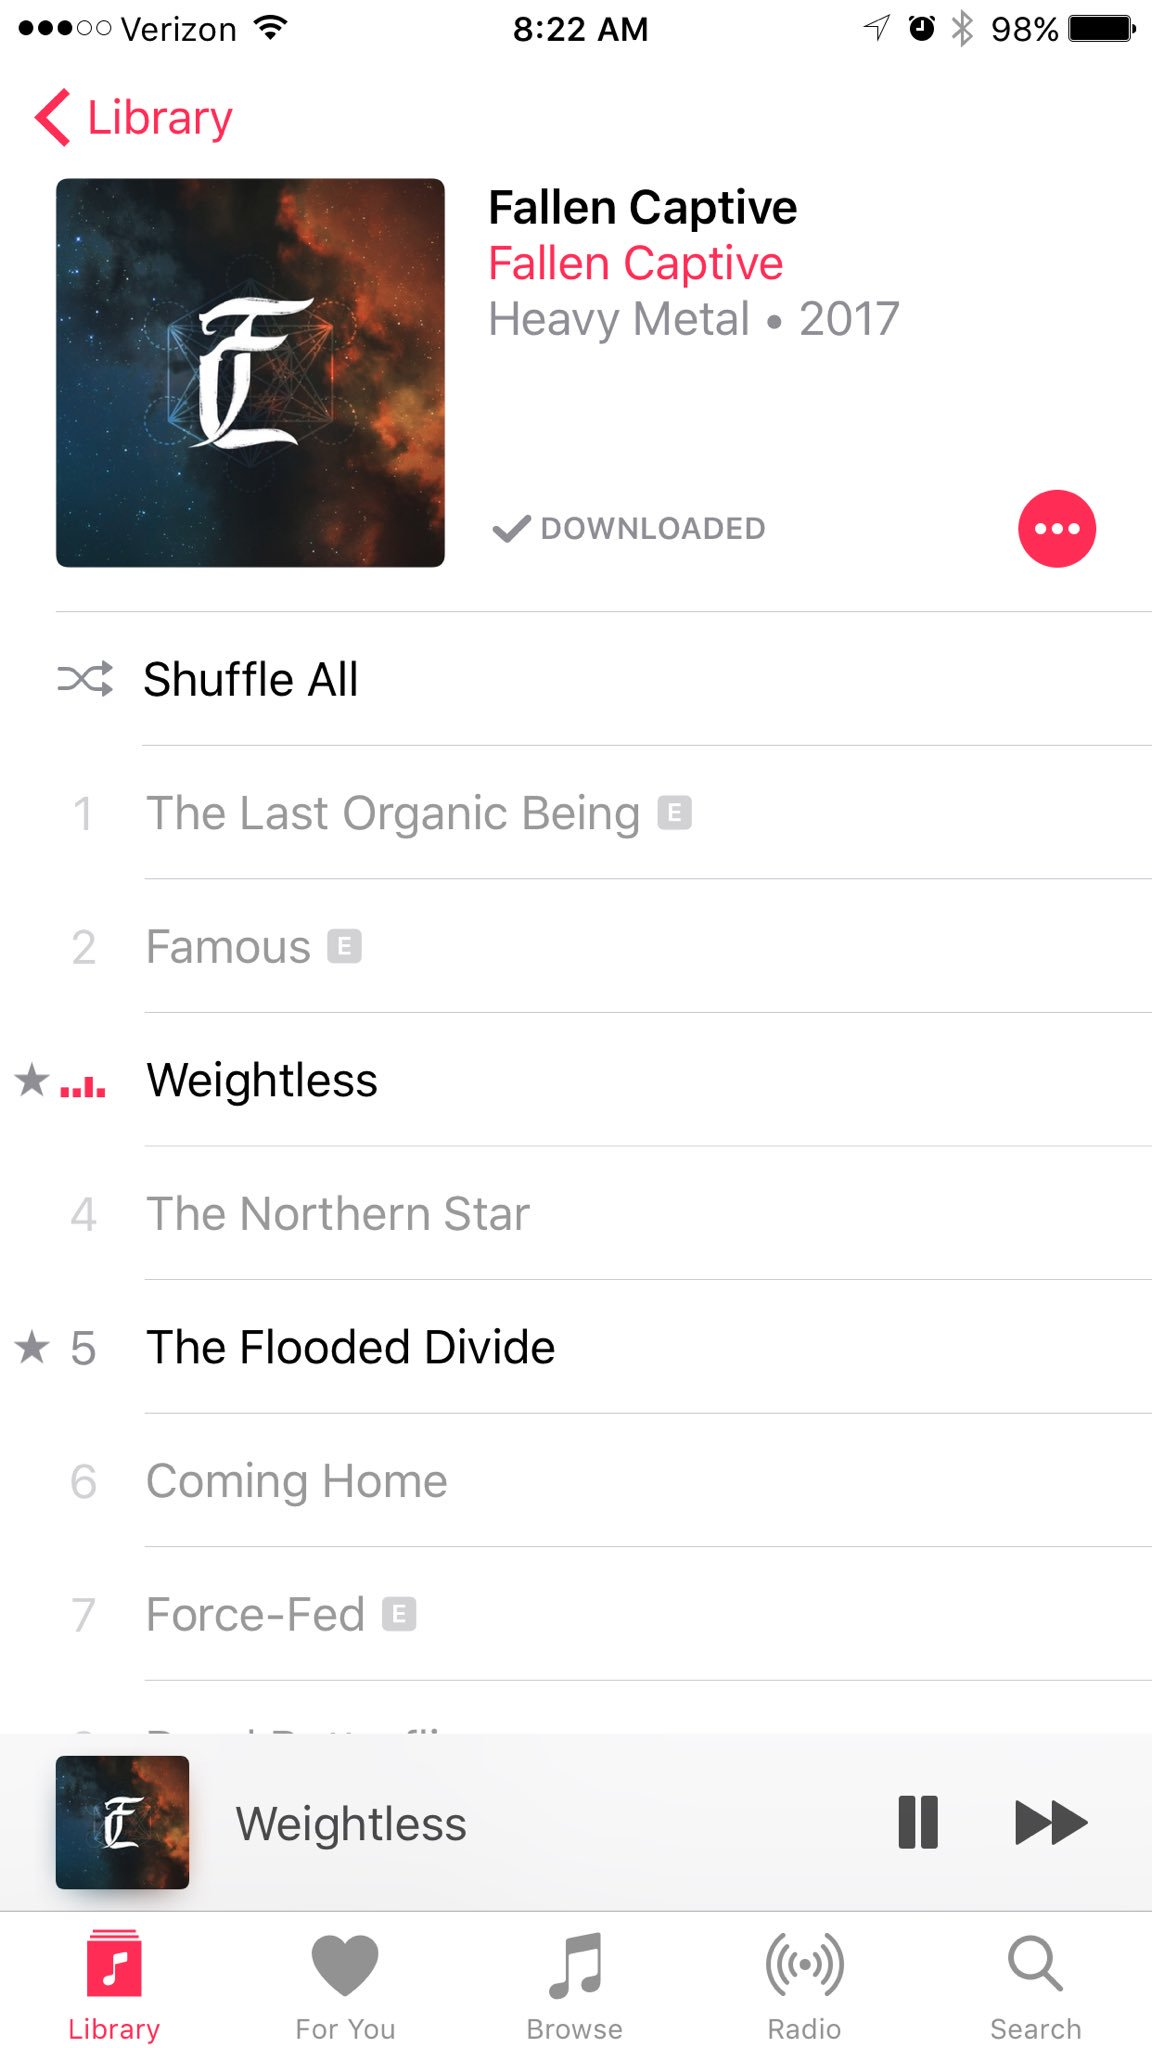 Pre-Order our record on iTunes: https://t.co/gyNaSD8CkX https://t.co/0FYup9G5zi